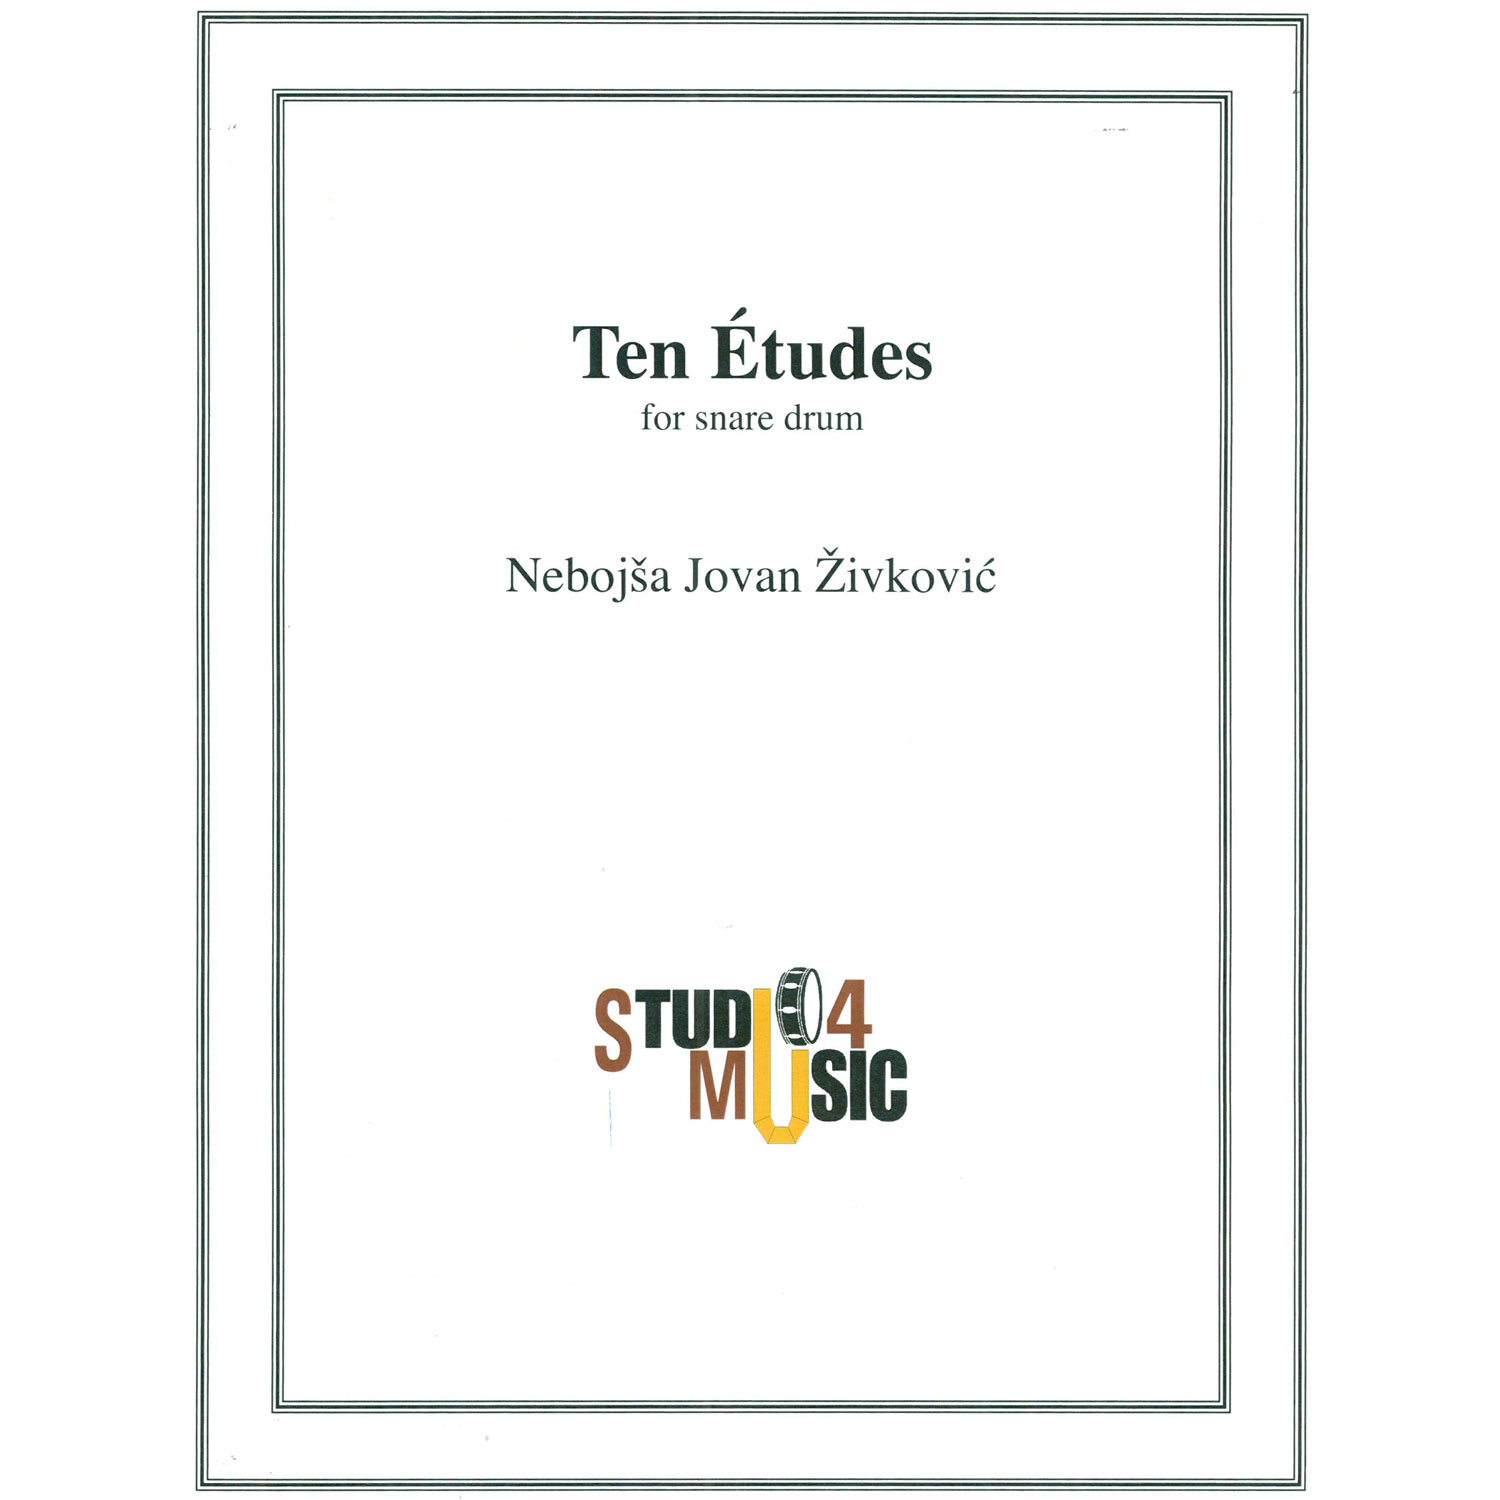 Ten Etudes for Snare Drum by Nebojsa Jovan Zivkovic